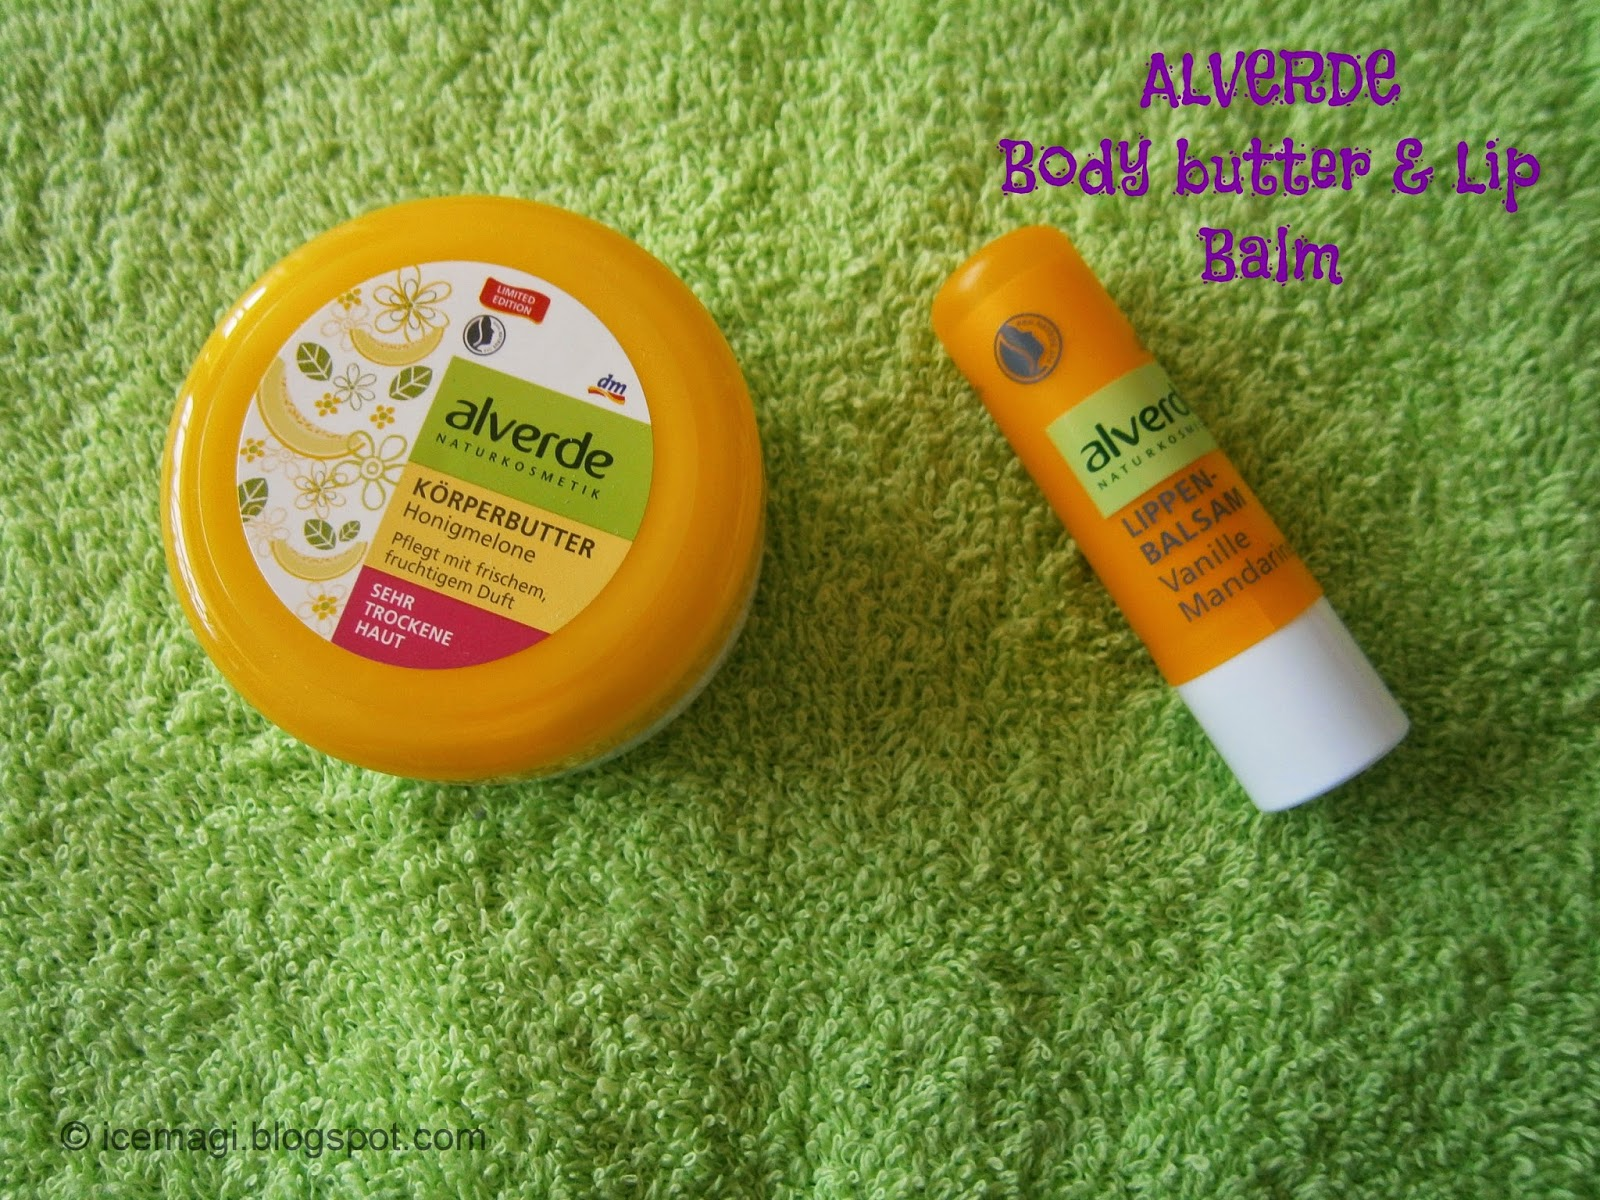 Alverde body butter lip balm